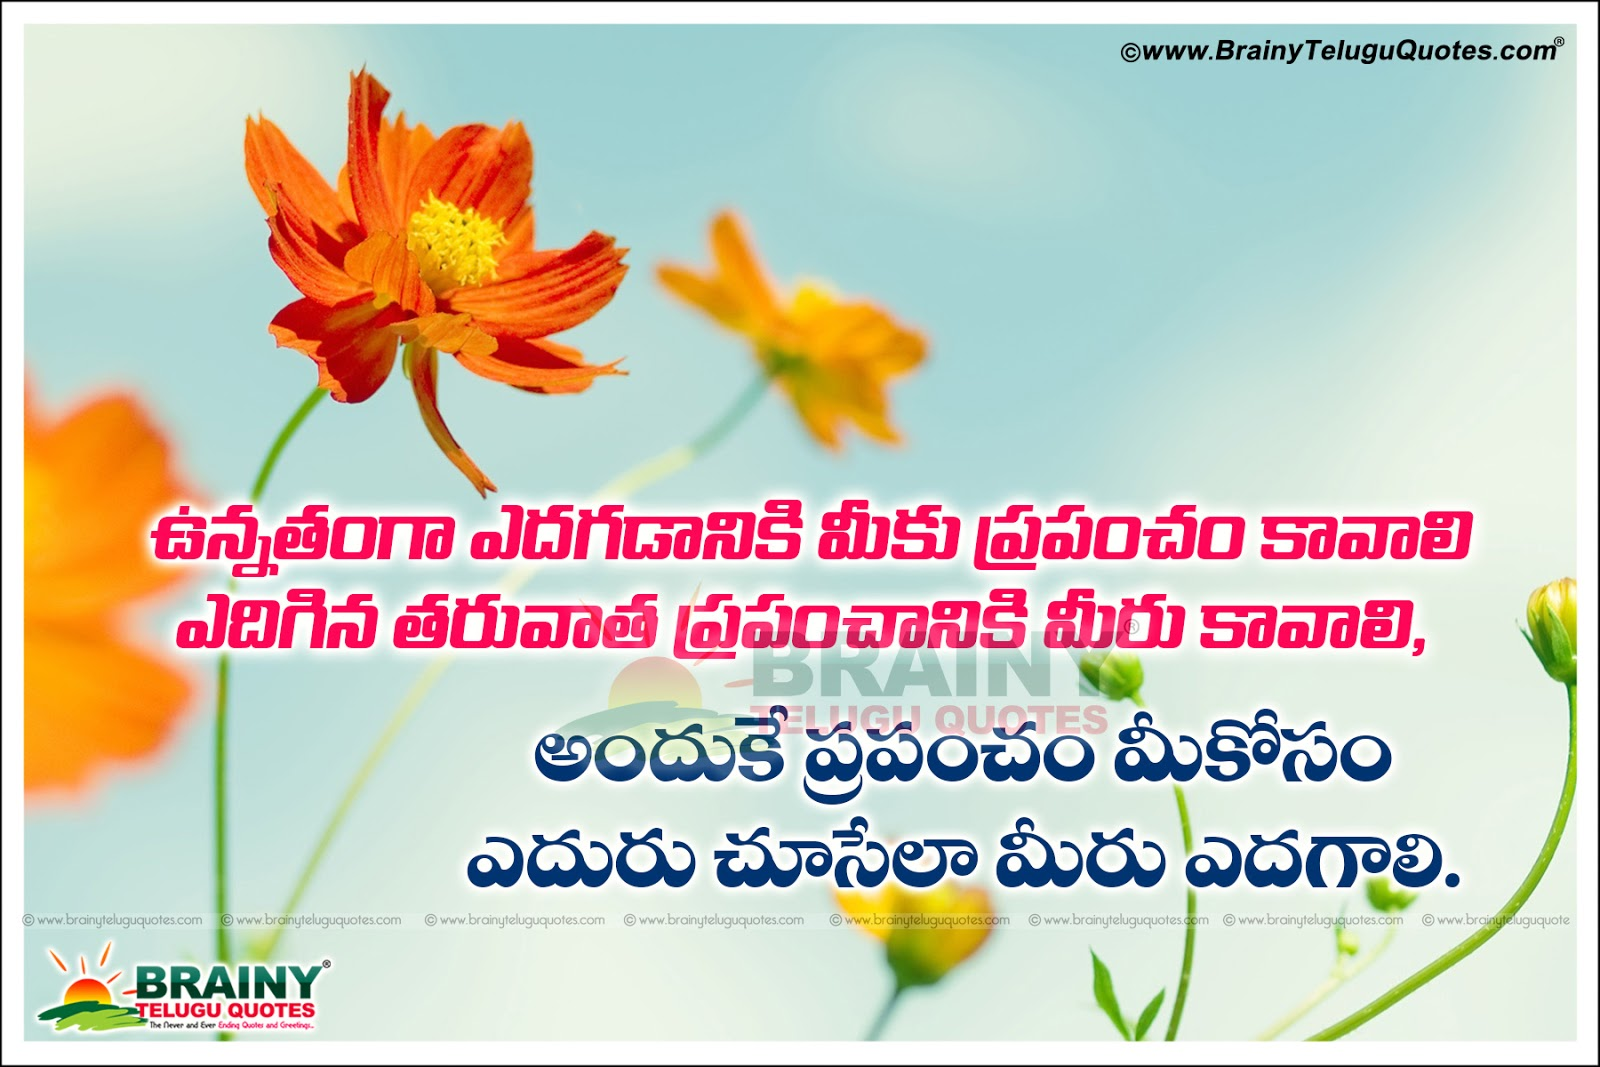 Quotes Confidence Hard Work Success And Self Confidence Quotes And Sayings In Telugu